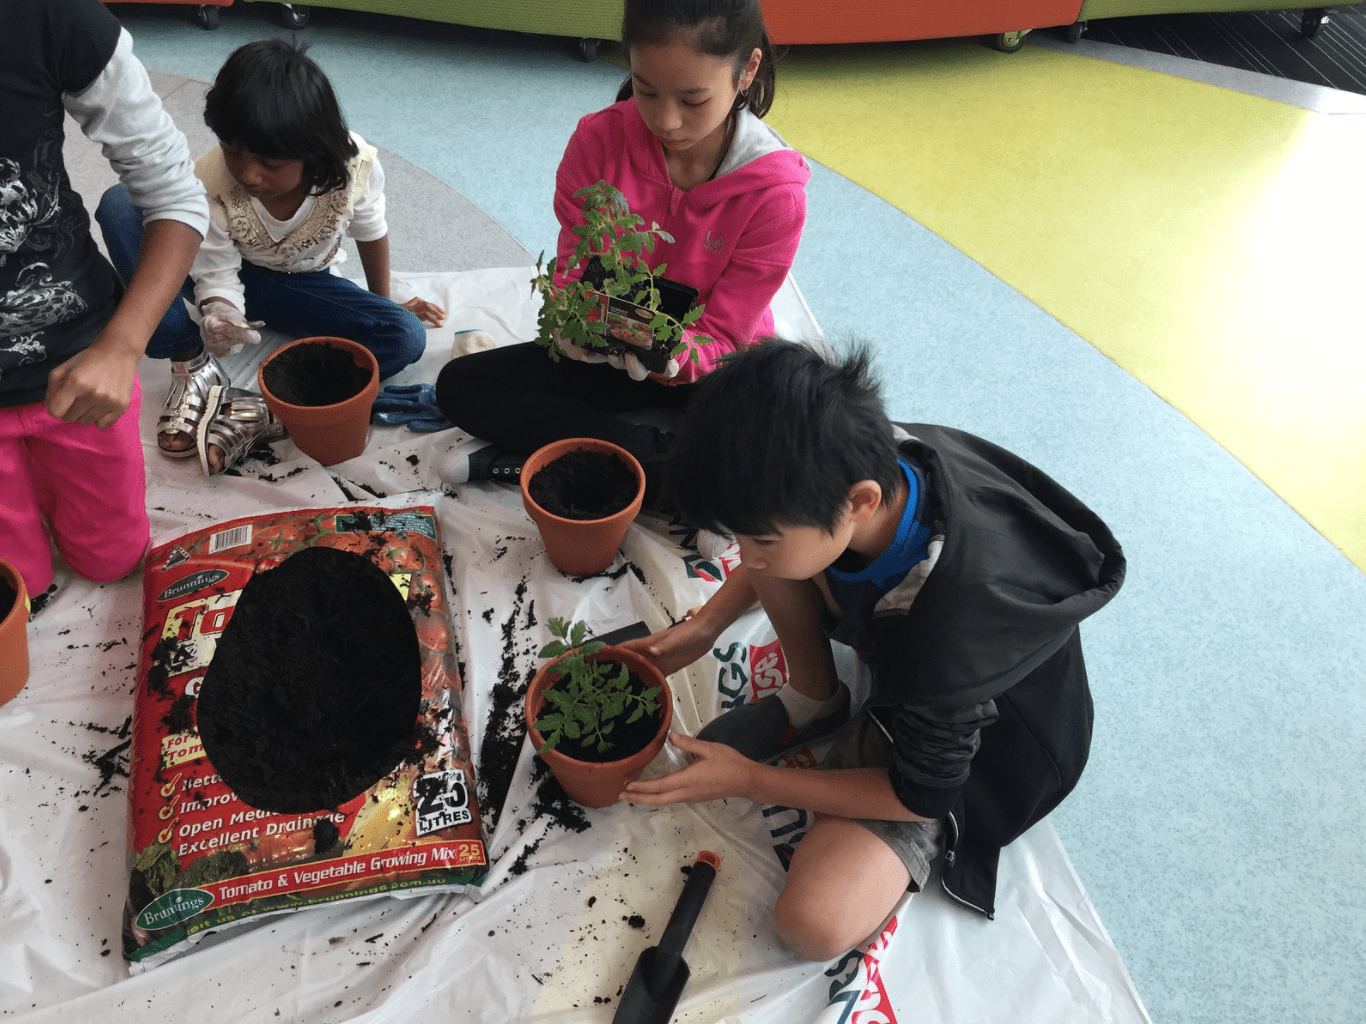 Family-friendly things to do - Gardening